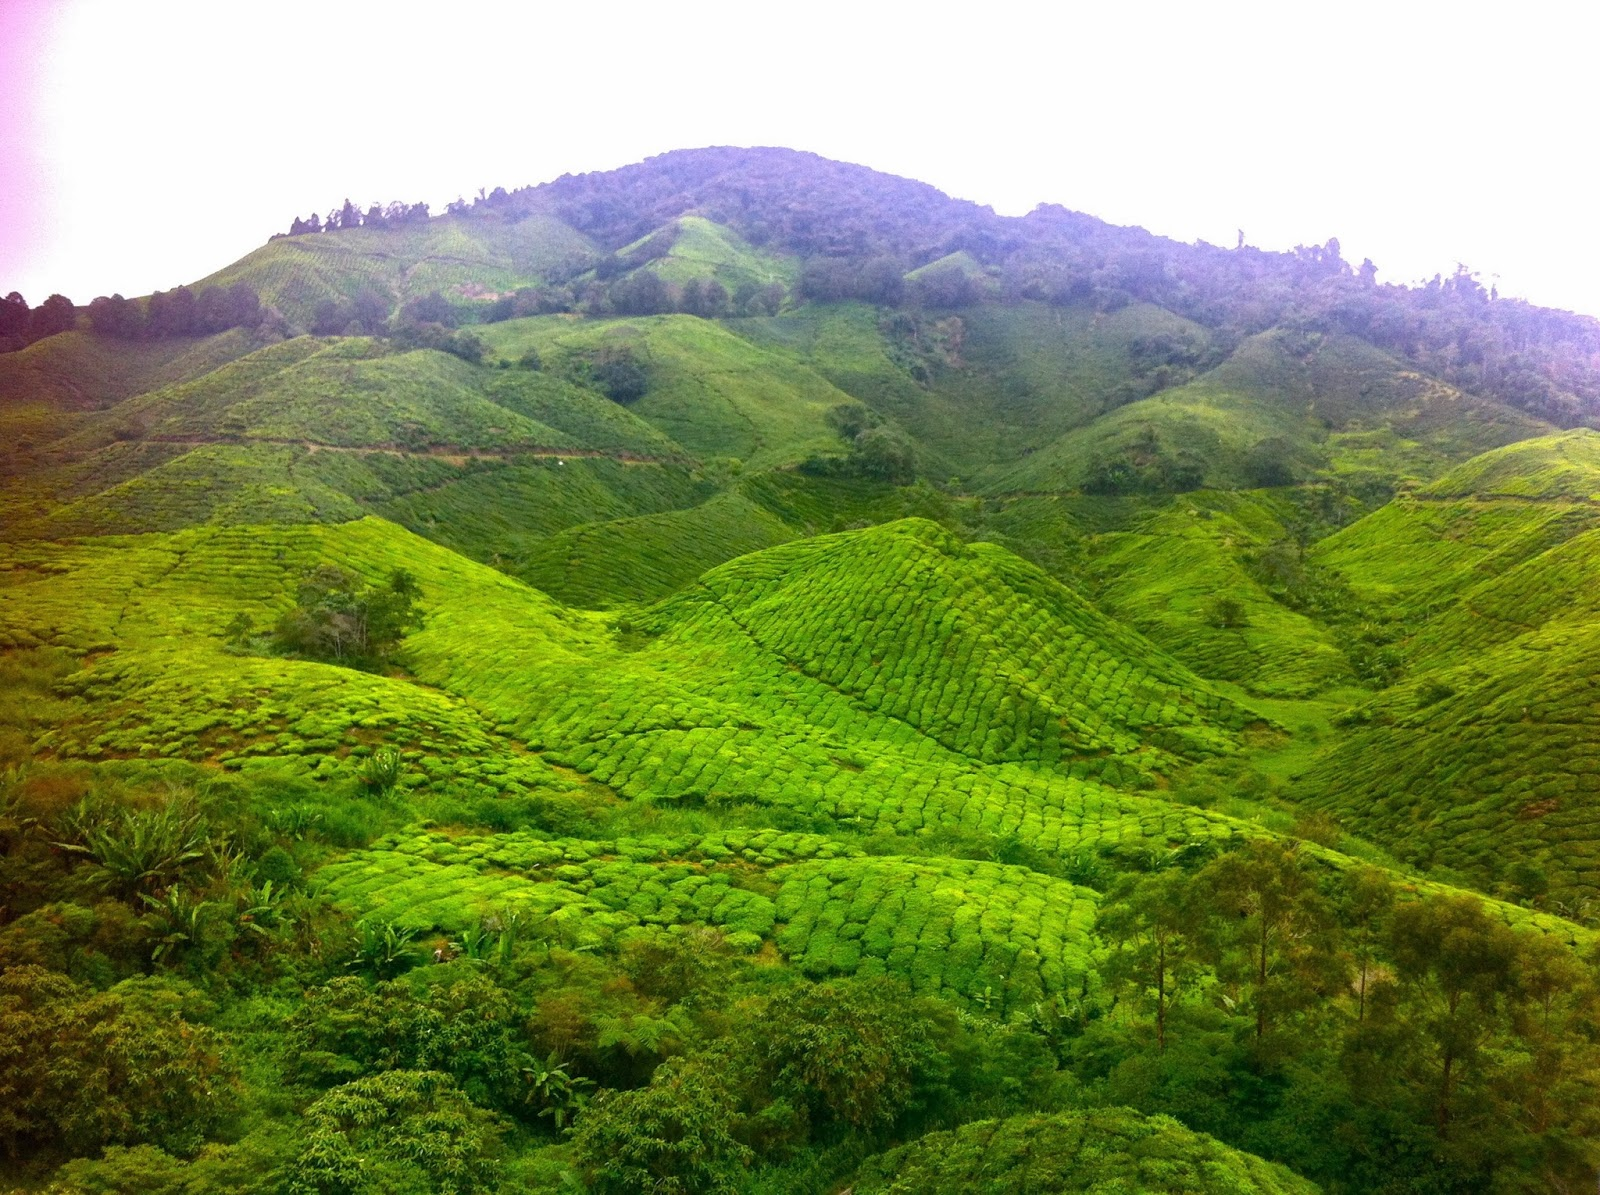 BOH tea plantation in the Cameron Highlands, Malaysia